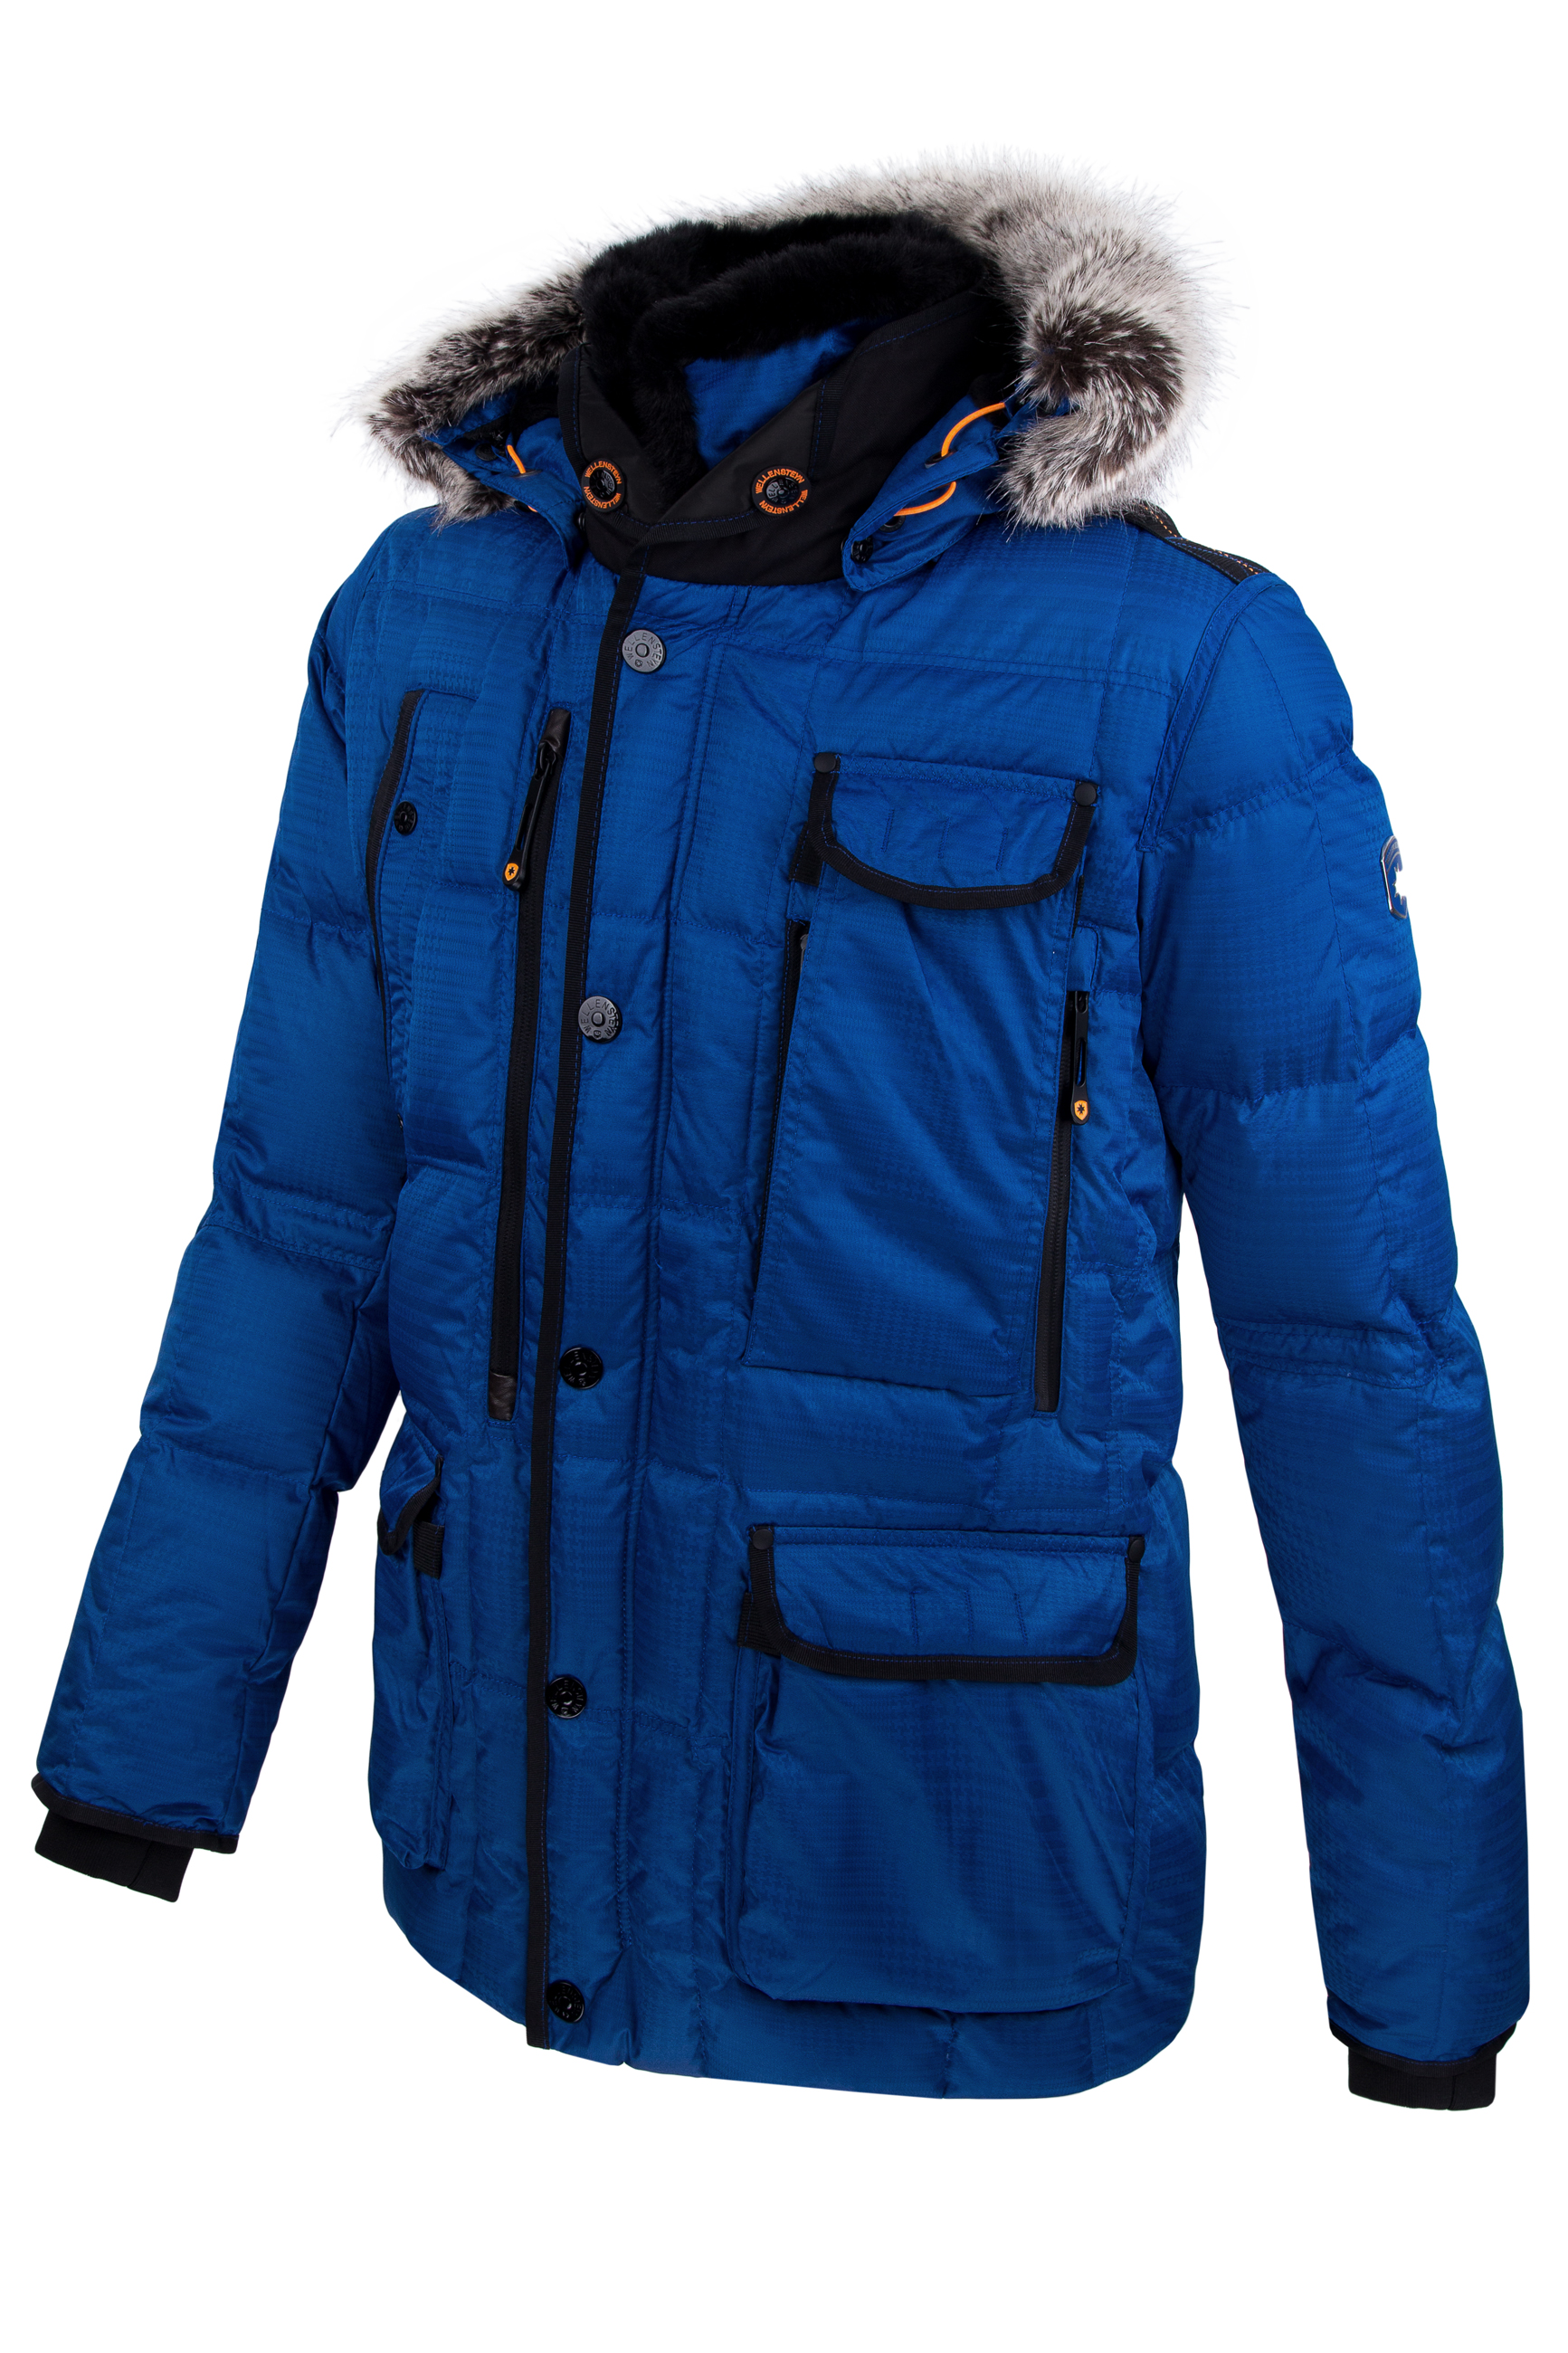 Wellensteyn Jacke Nauticblue Damen Marvellous Winter